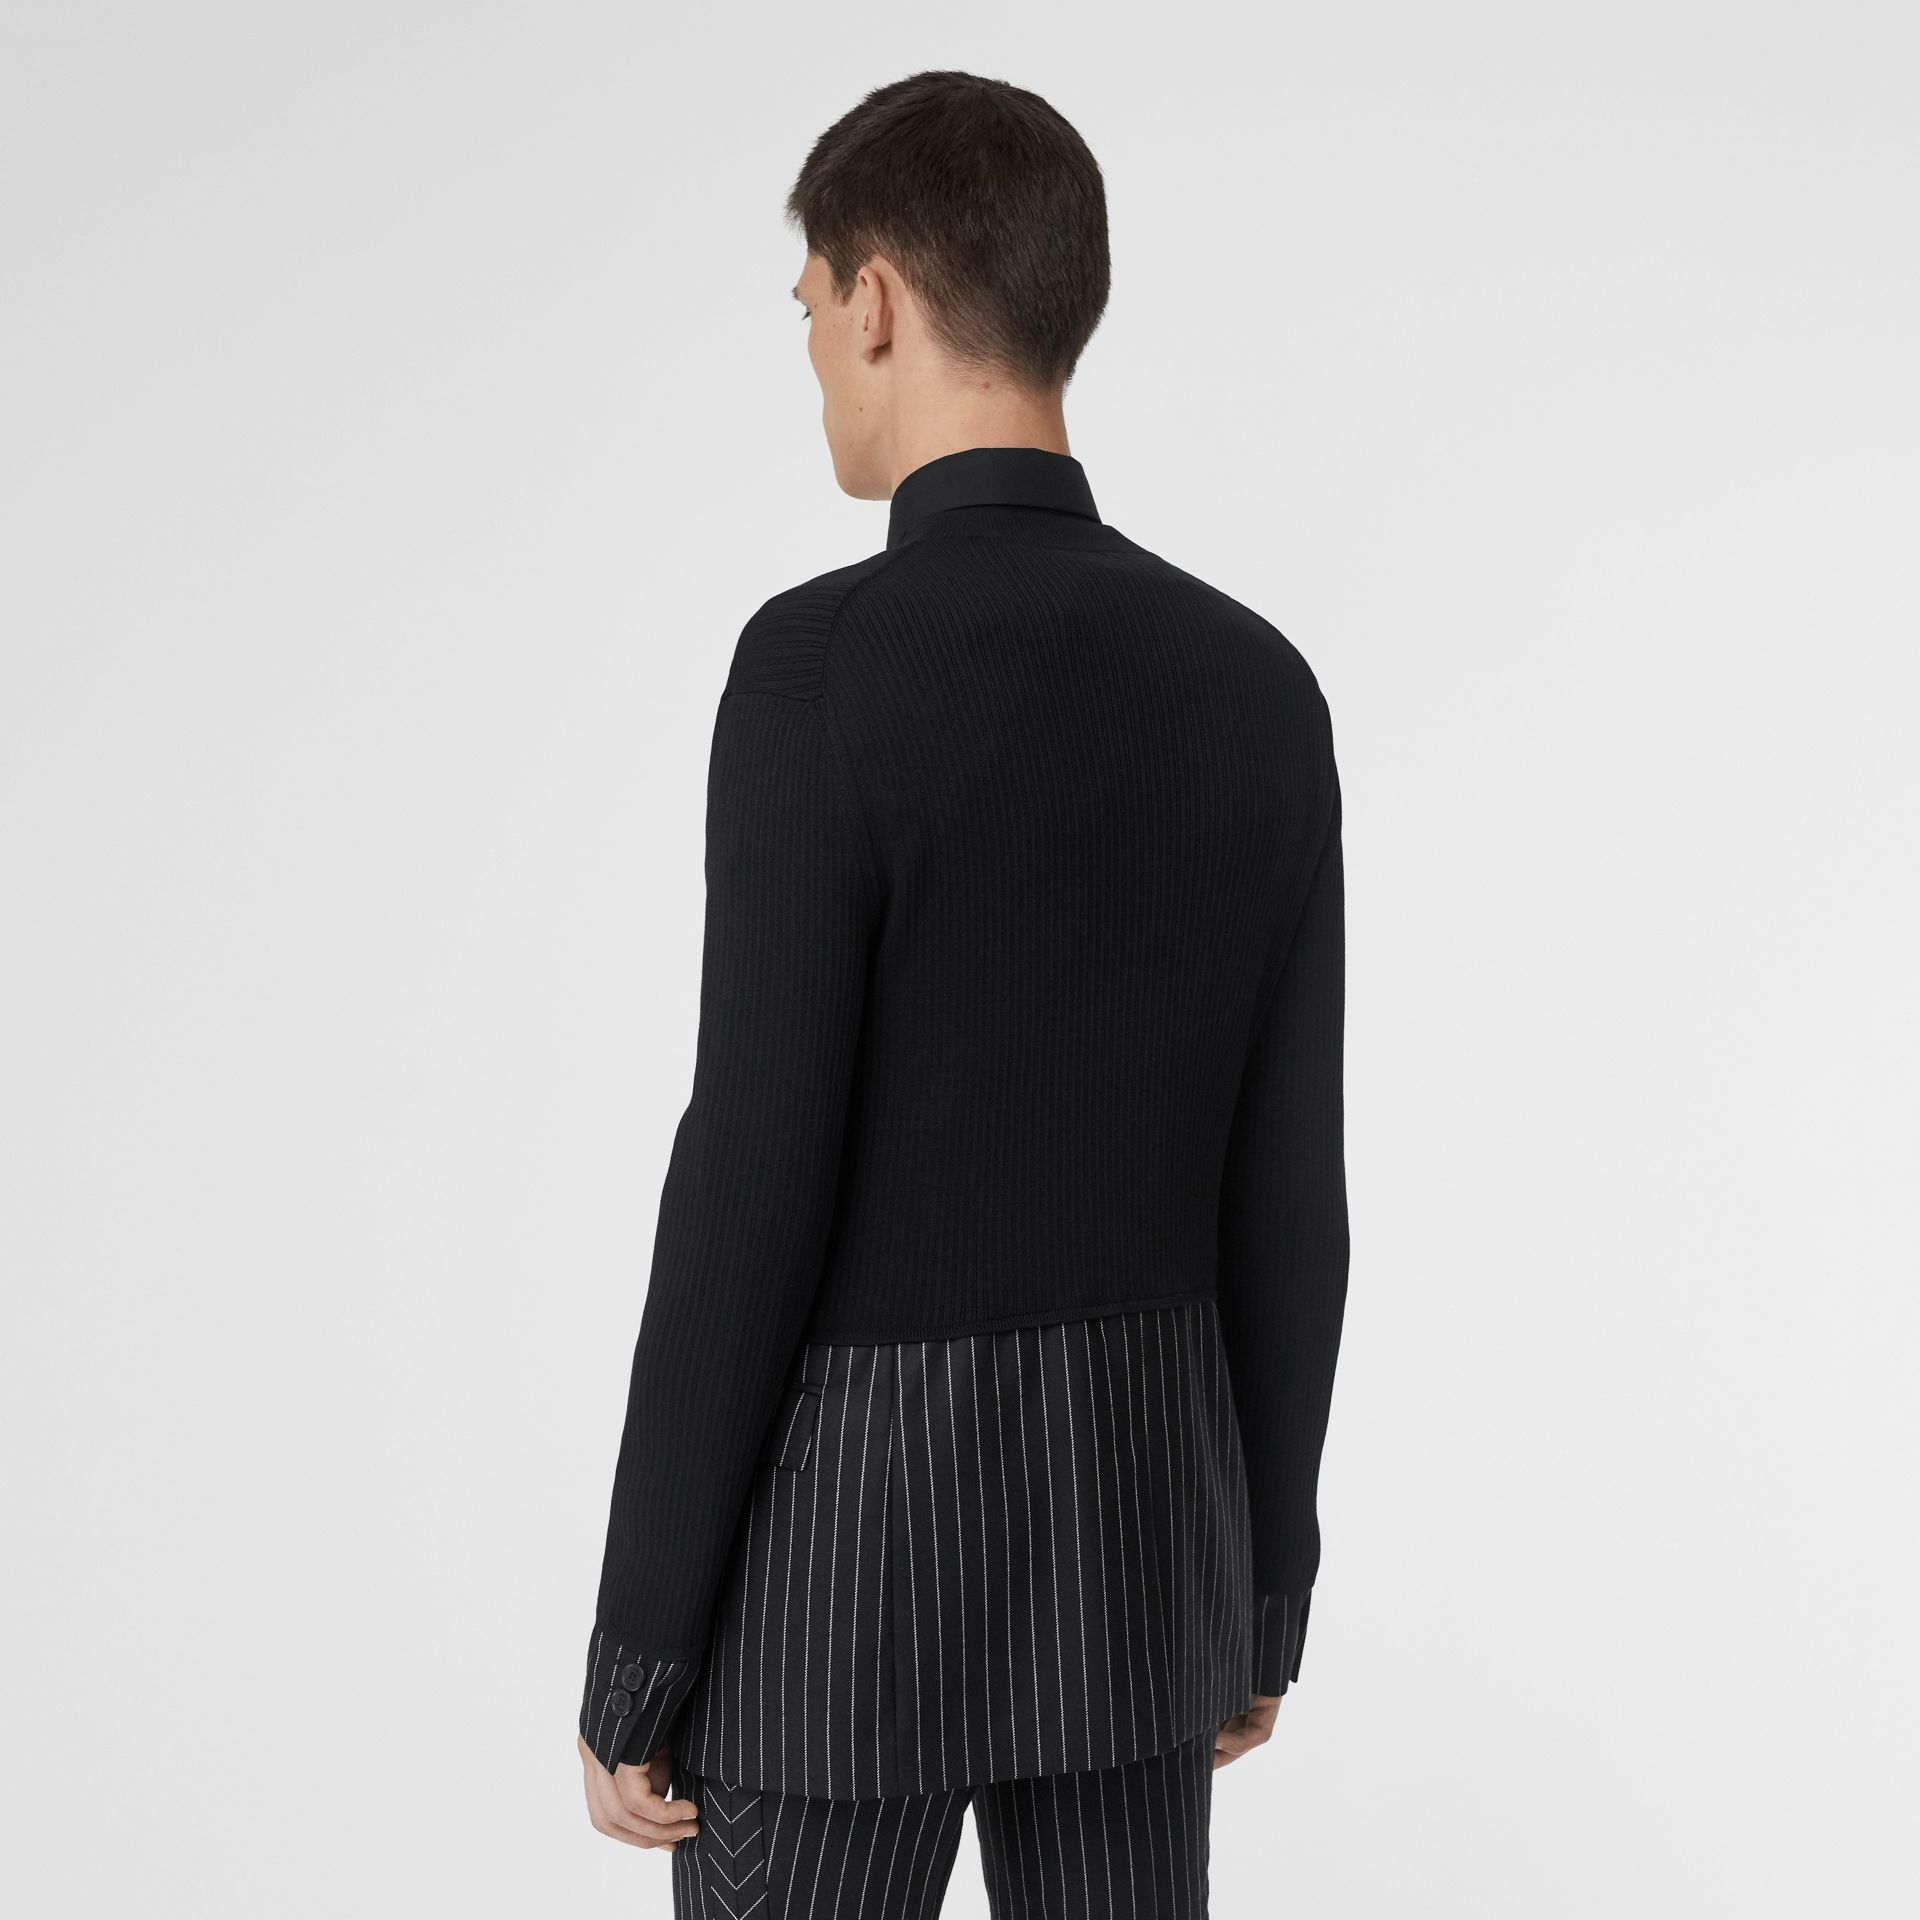 Tailored Panel Rib Knit Silk Blend Sweater in Black | Burberry Australia - gallery image 2